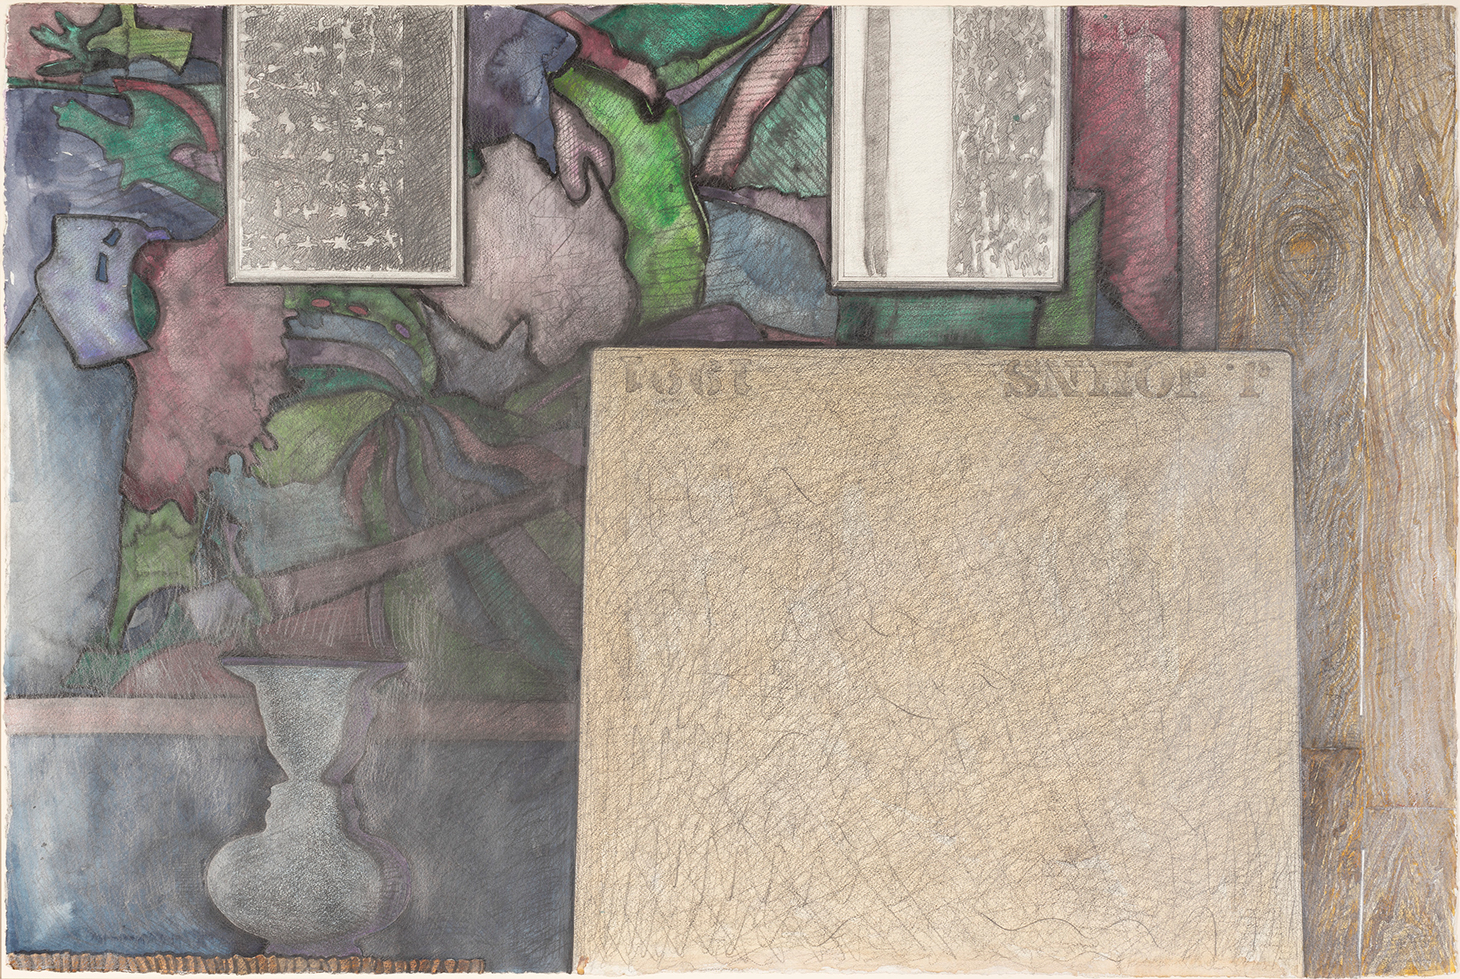 """Jasper Johns, """"Untitled""""(1991), watercolor, pencil, and graphite on paper, 27 1/2 x 41 in. Artwork © Jasper Johns / Licensed by VAGA at Artists Rights Society (ARS), New York (photo by Kris Graves)"""